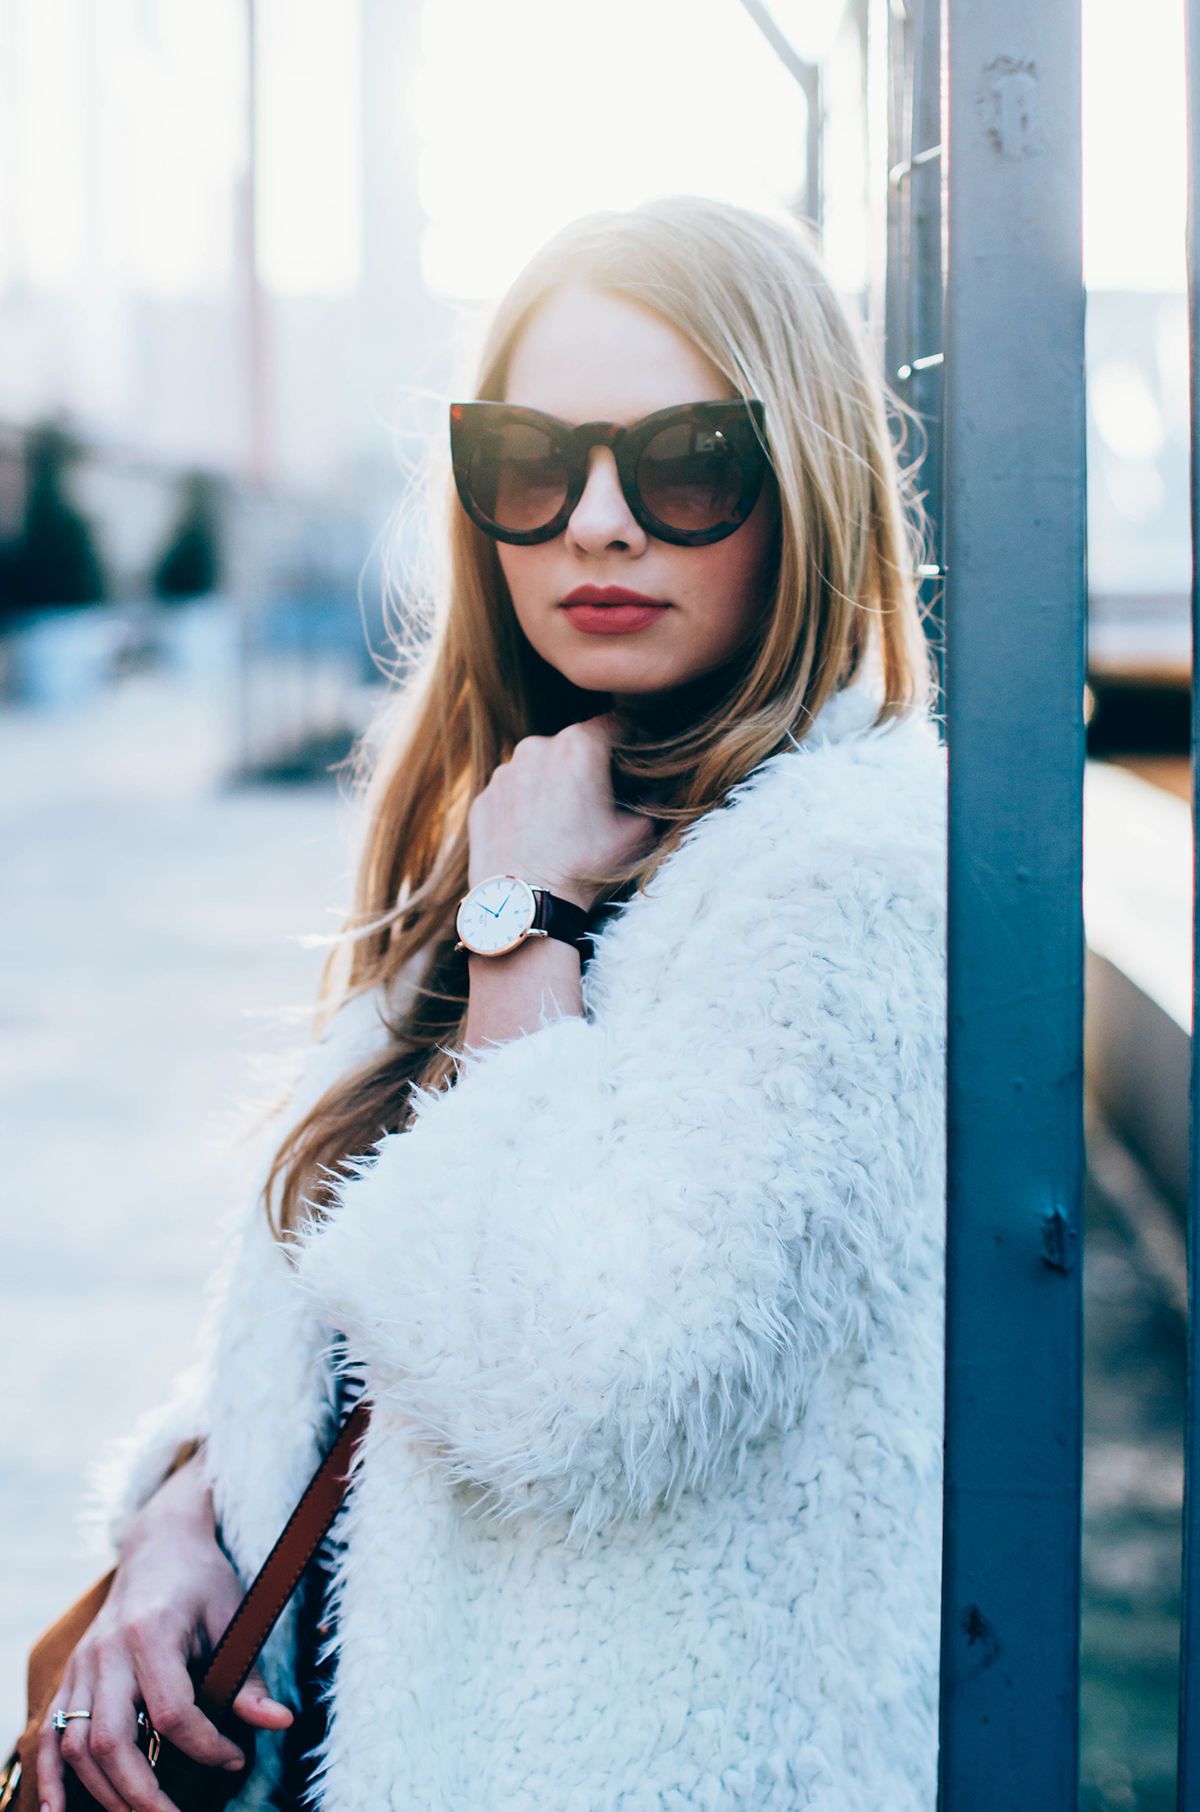 white-fluffy-cardgan-ripped-skinny-jeans-suede-boots-camel-scarf-fluffy-keyrng-cat-eye-sunglasses (11)